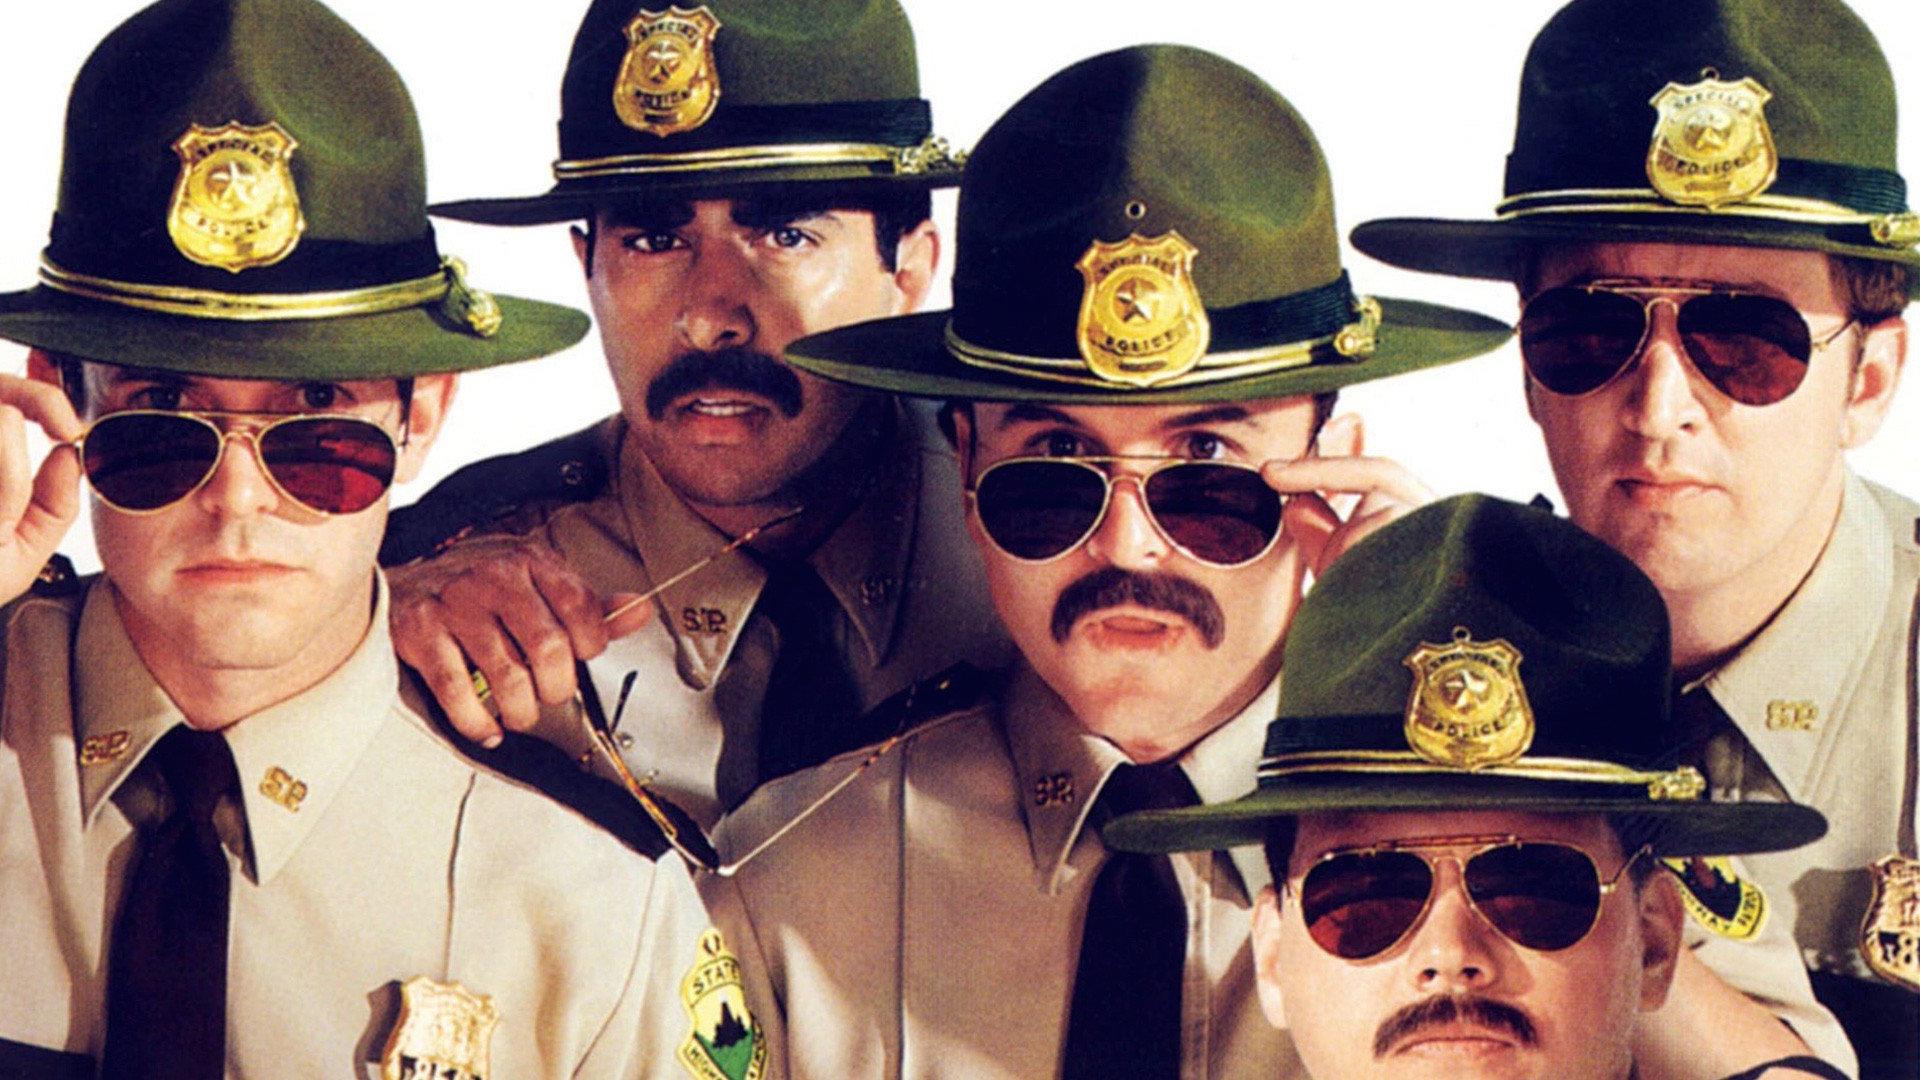 The Broken Lizard gang as Super Troopers